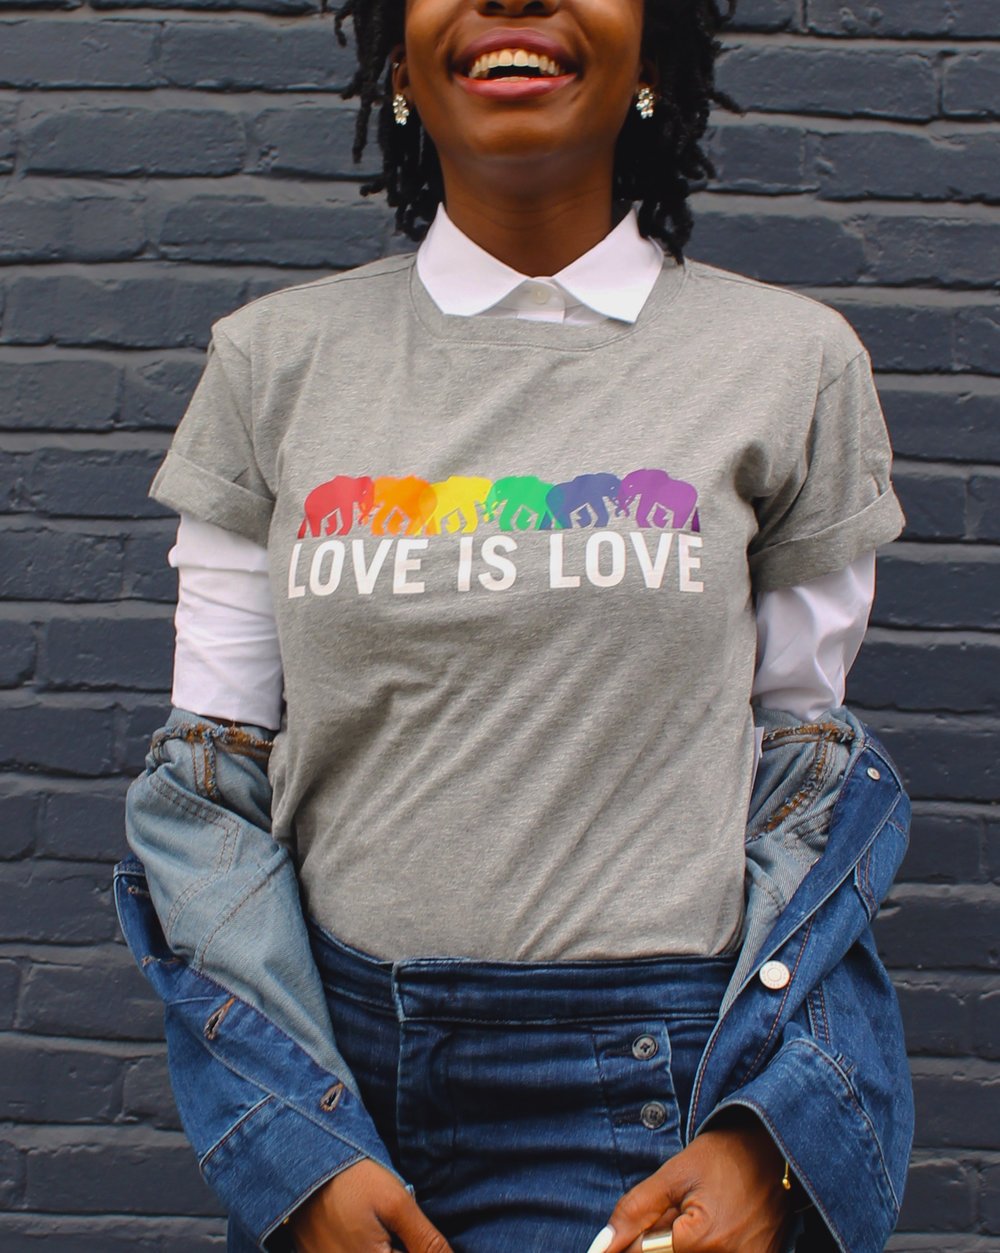 love is love - period.